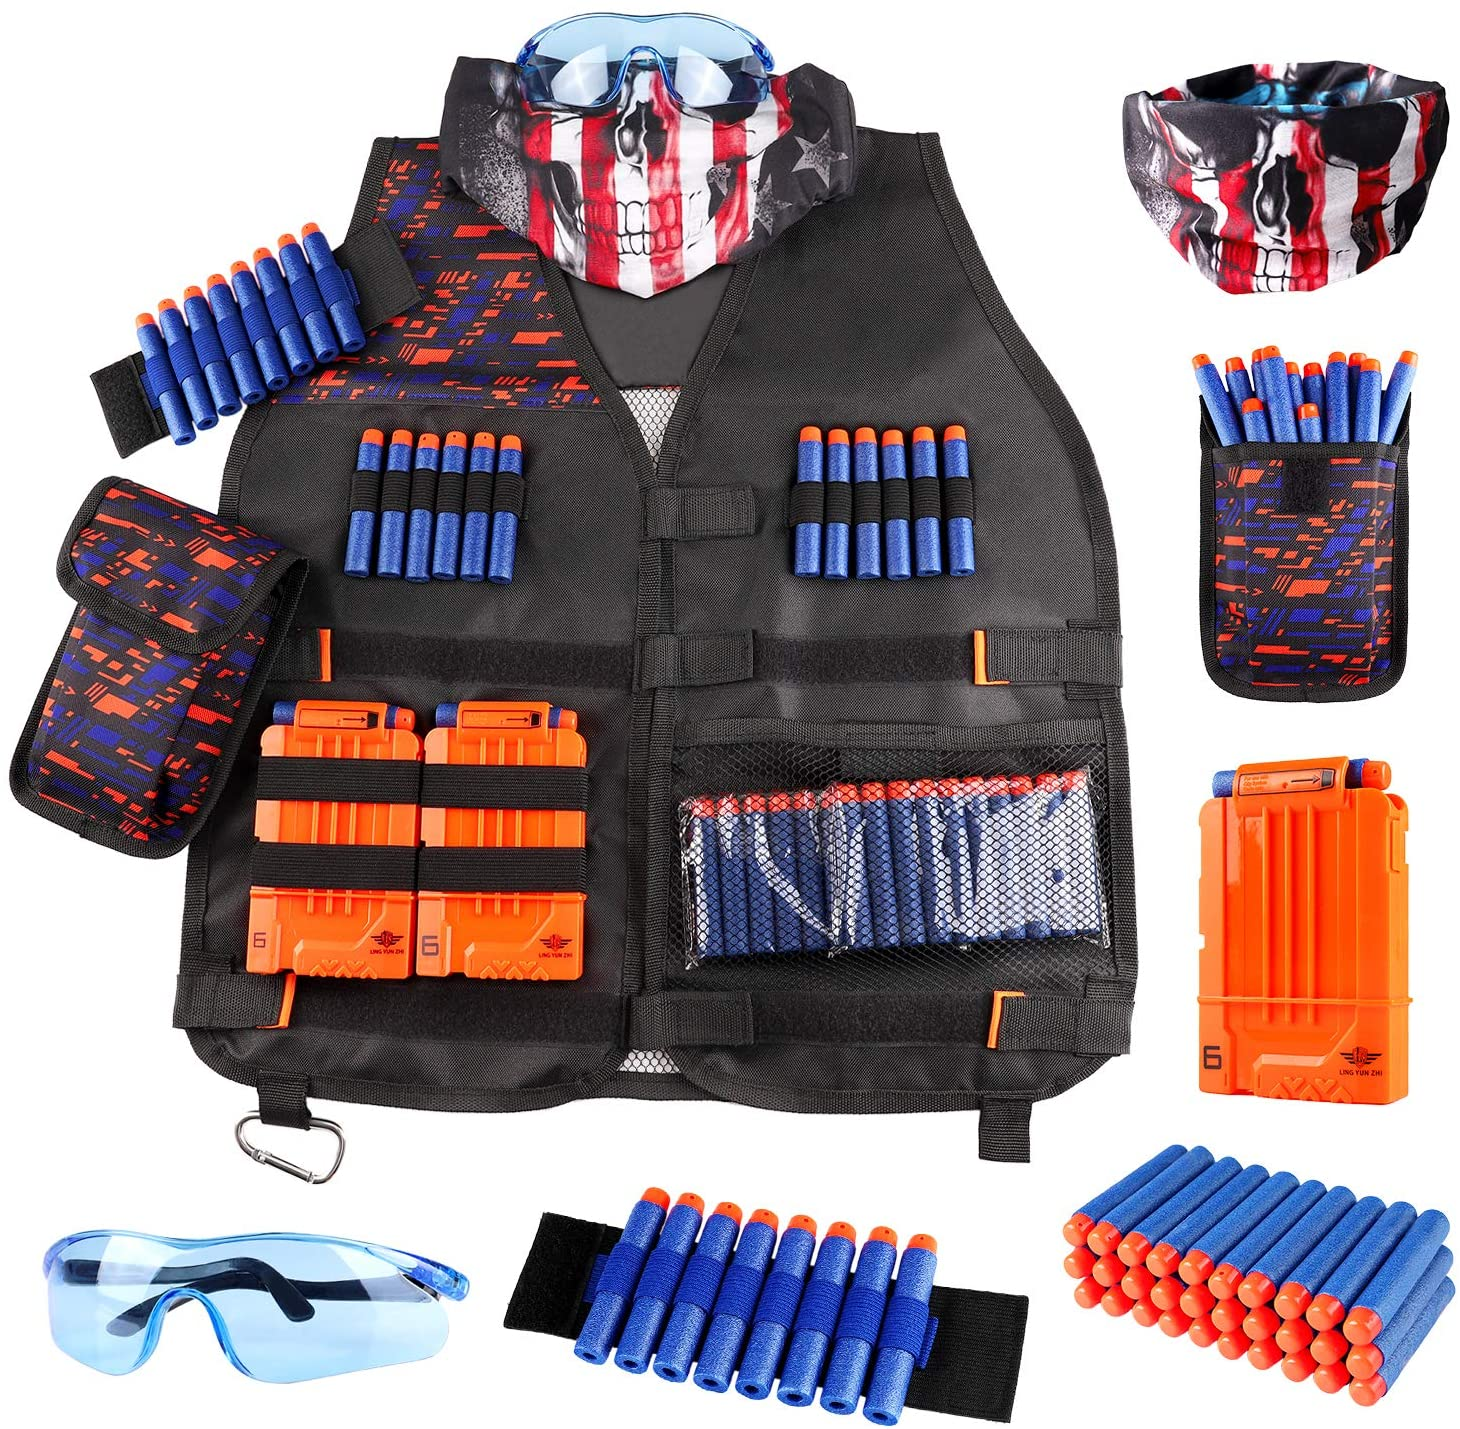 Kids Tactical Vest Kit for Nerf Guns N-Strike Elite Series with Refill Darts Dart Pouch for $9.99 Shipped! (Reg.Price $19.99)